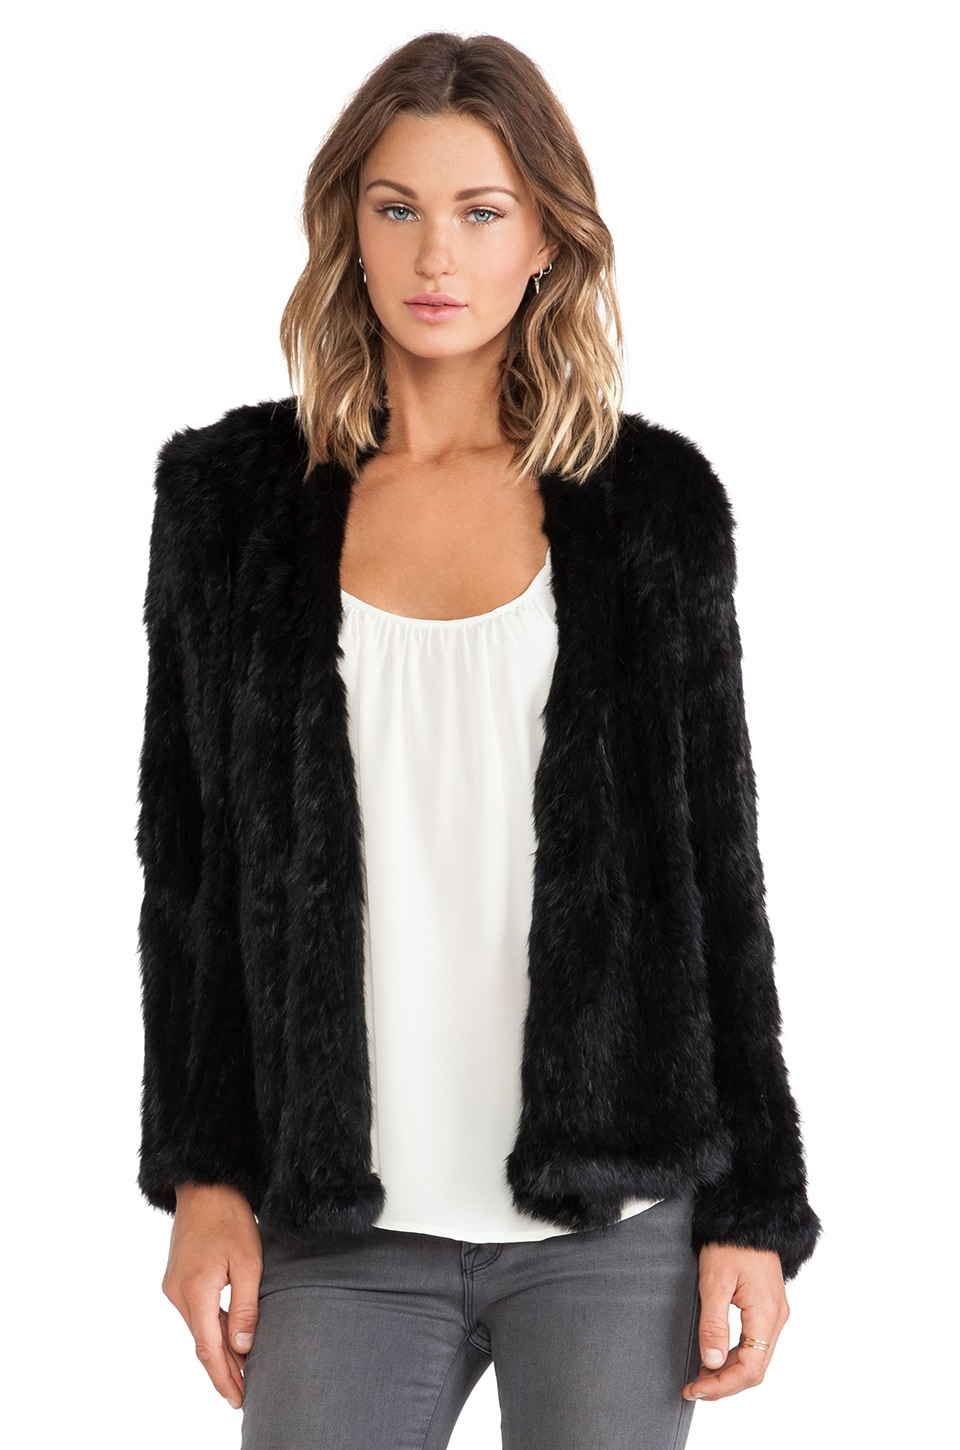 NICHOLAS Knitted Rabbit Fur Jacket in Black